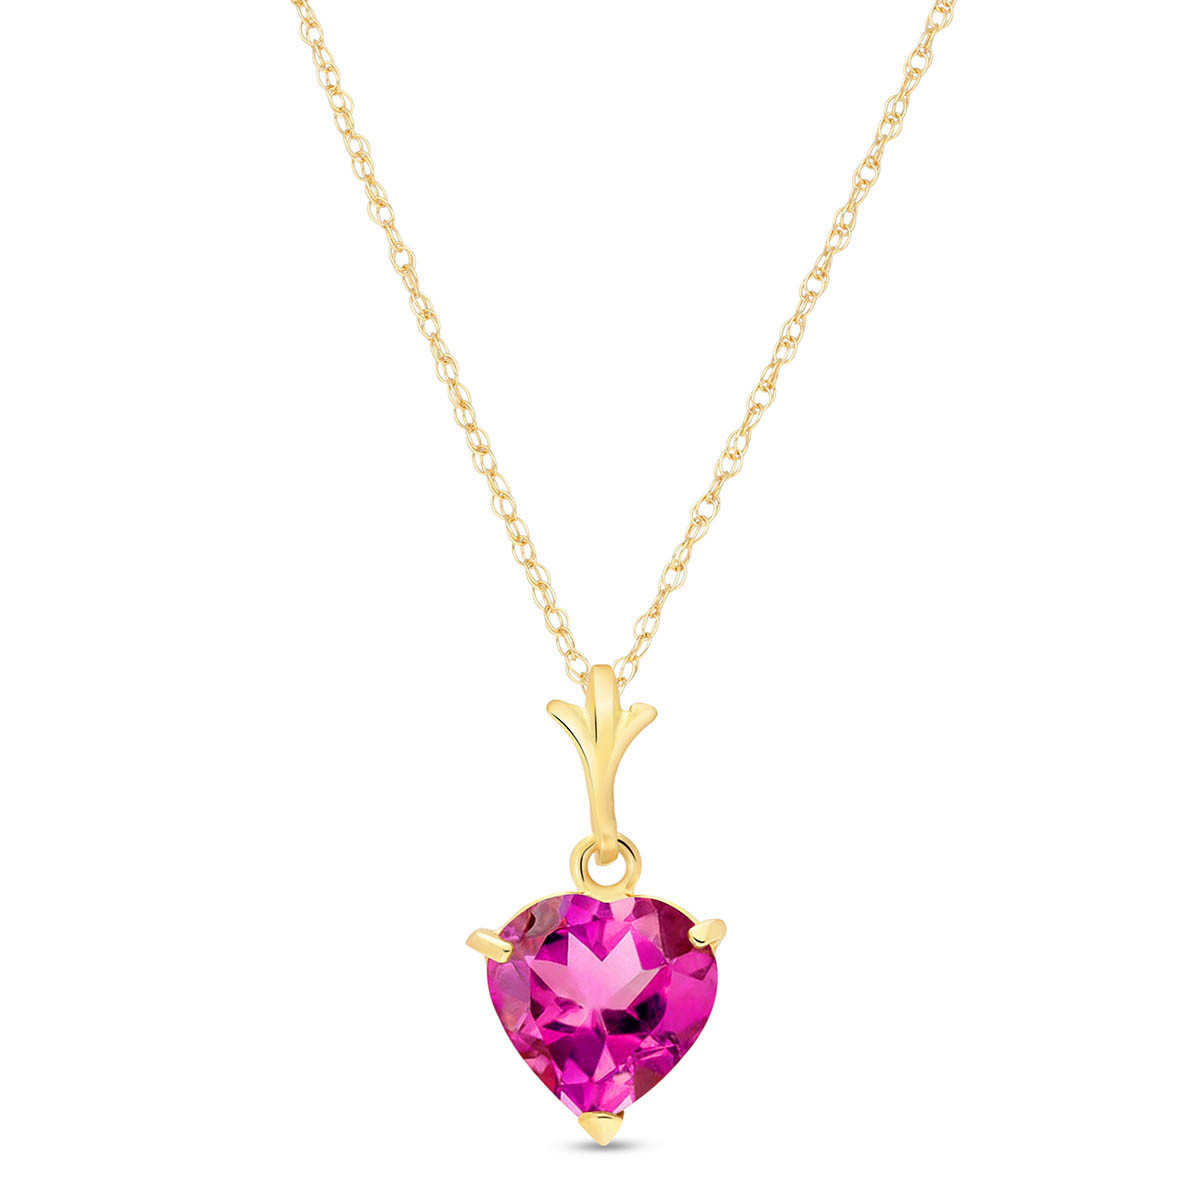 Pink Topaz Heart Pendant Necklace 1.15 ct in 9ct Gold